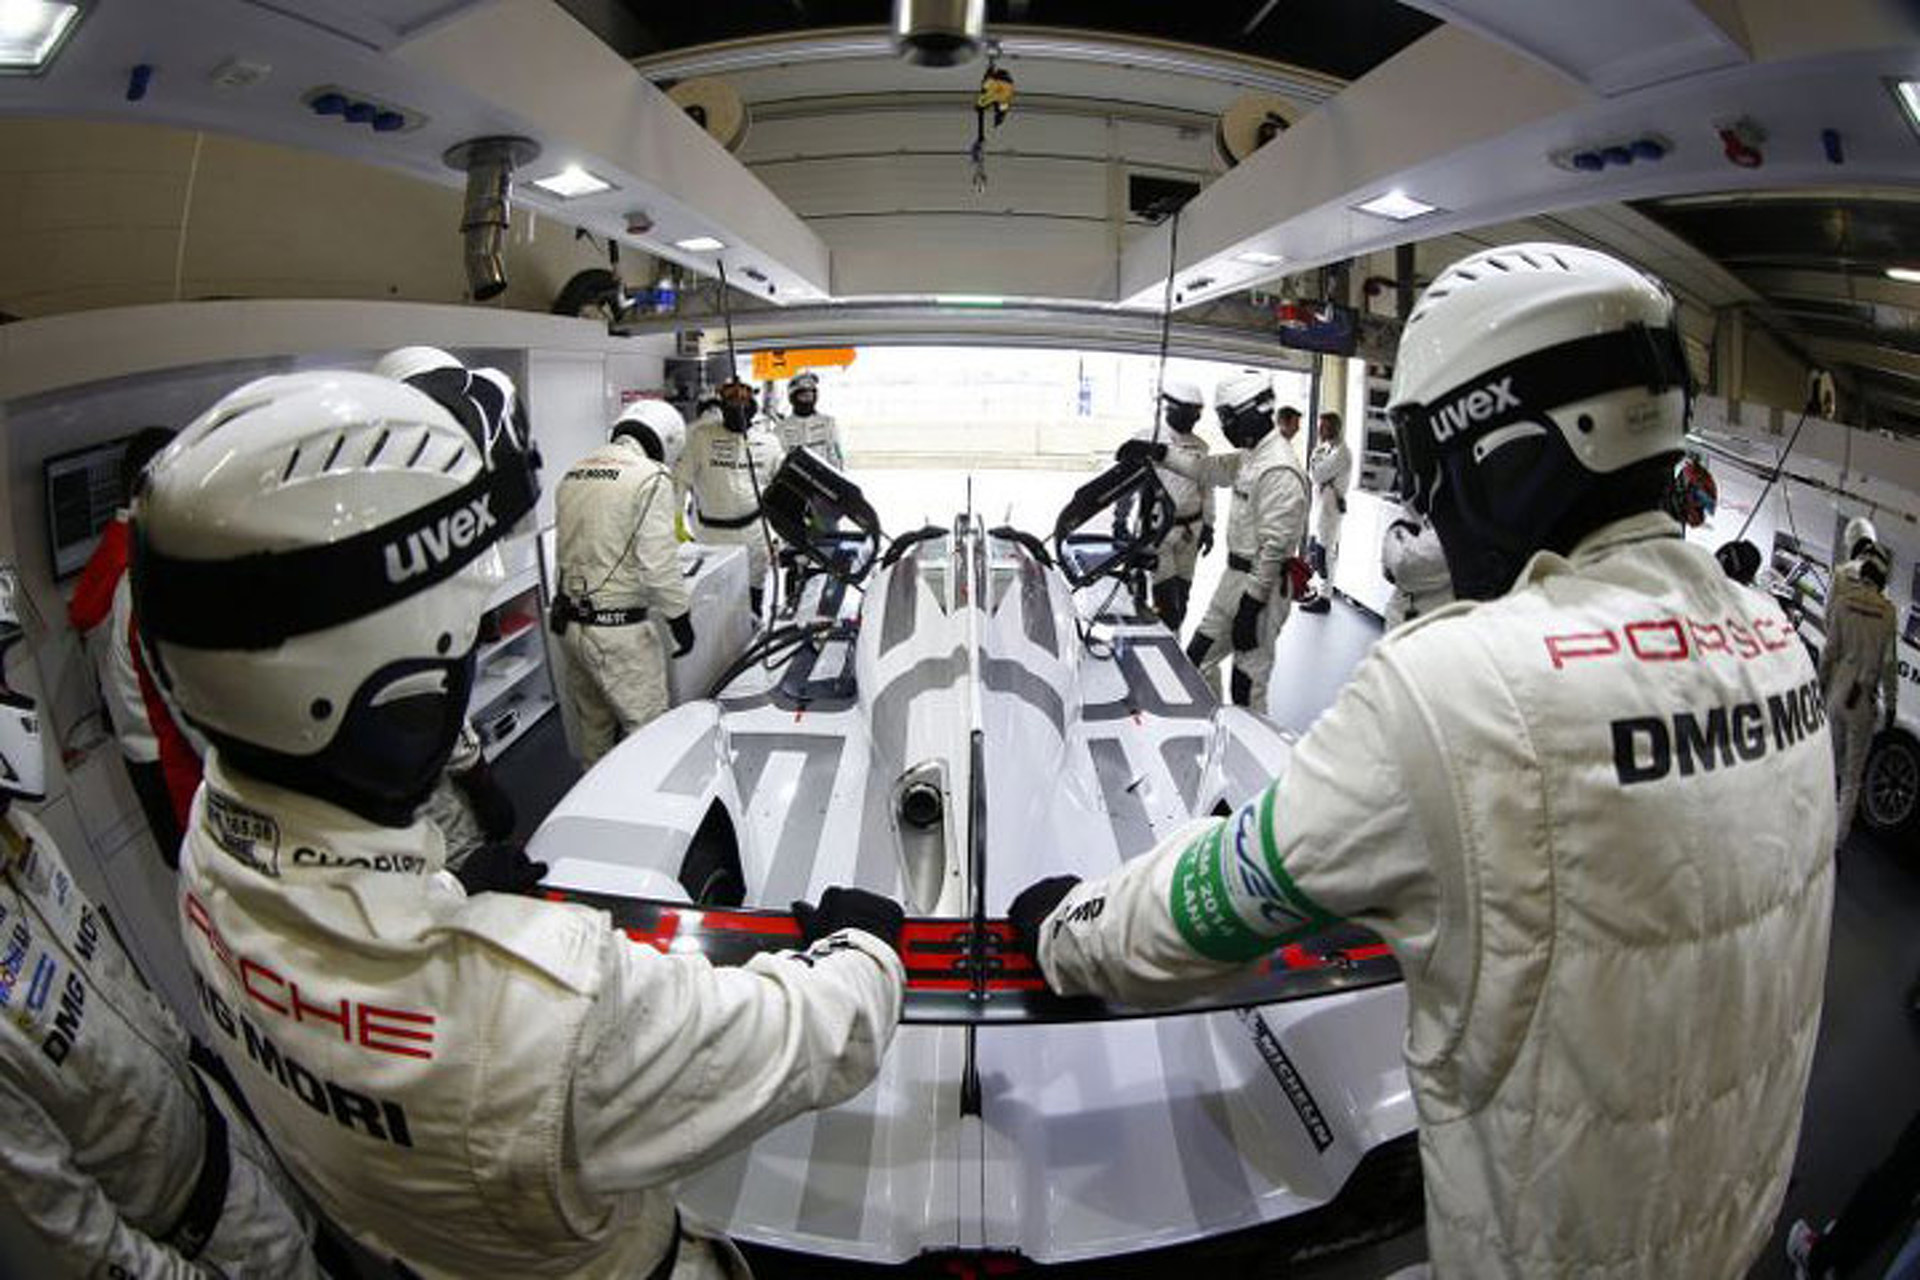 Just How Incredible is the Porsche 919 Hybrid?